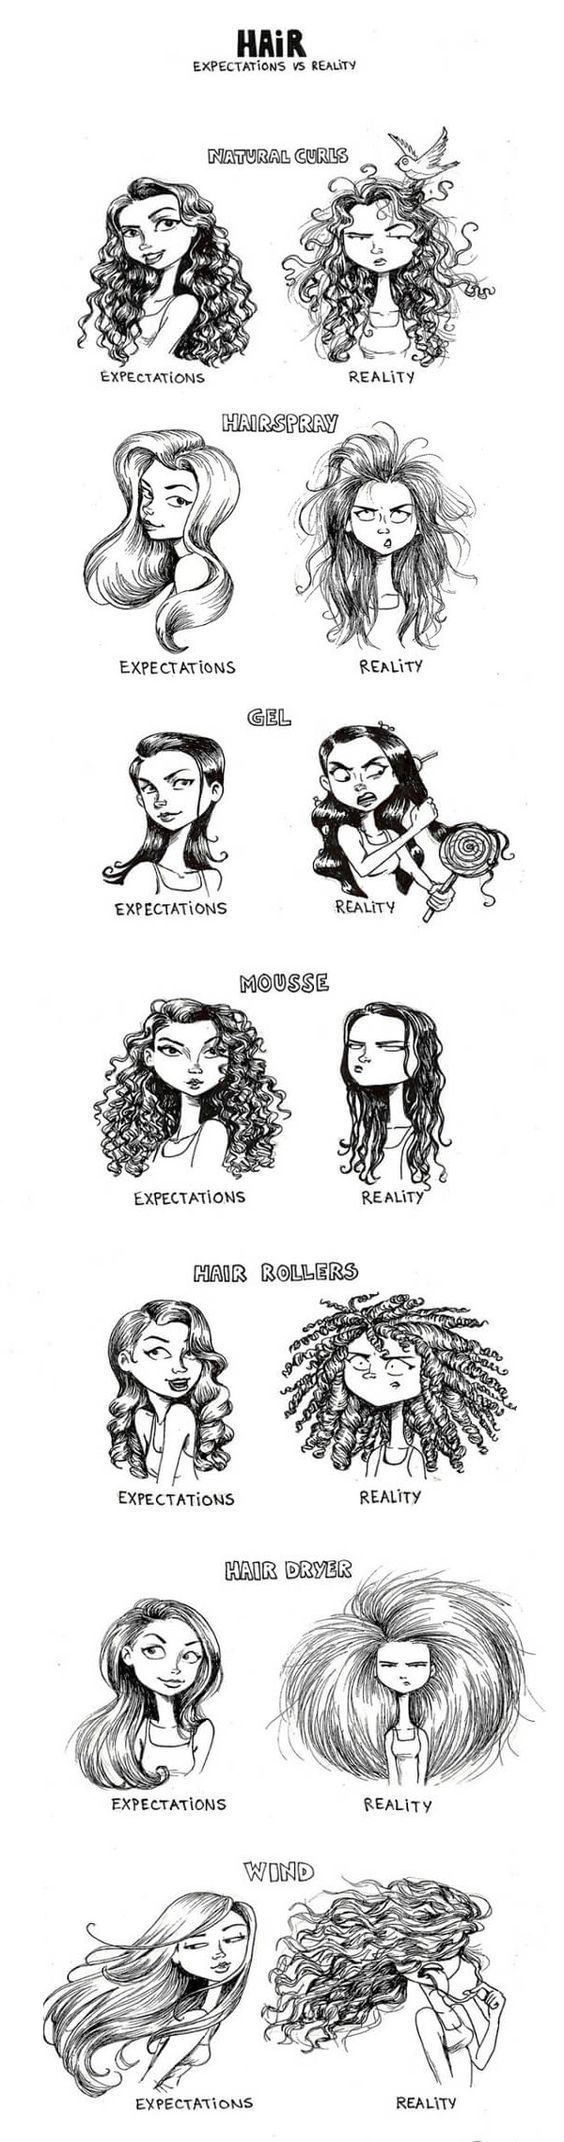 Womens Hair: Expectations Vs Reality - by C-Cassandra (http://c-cassandra.tumblr.com/about):